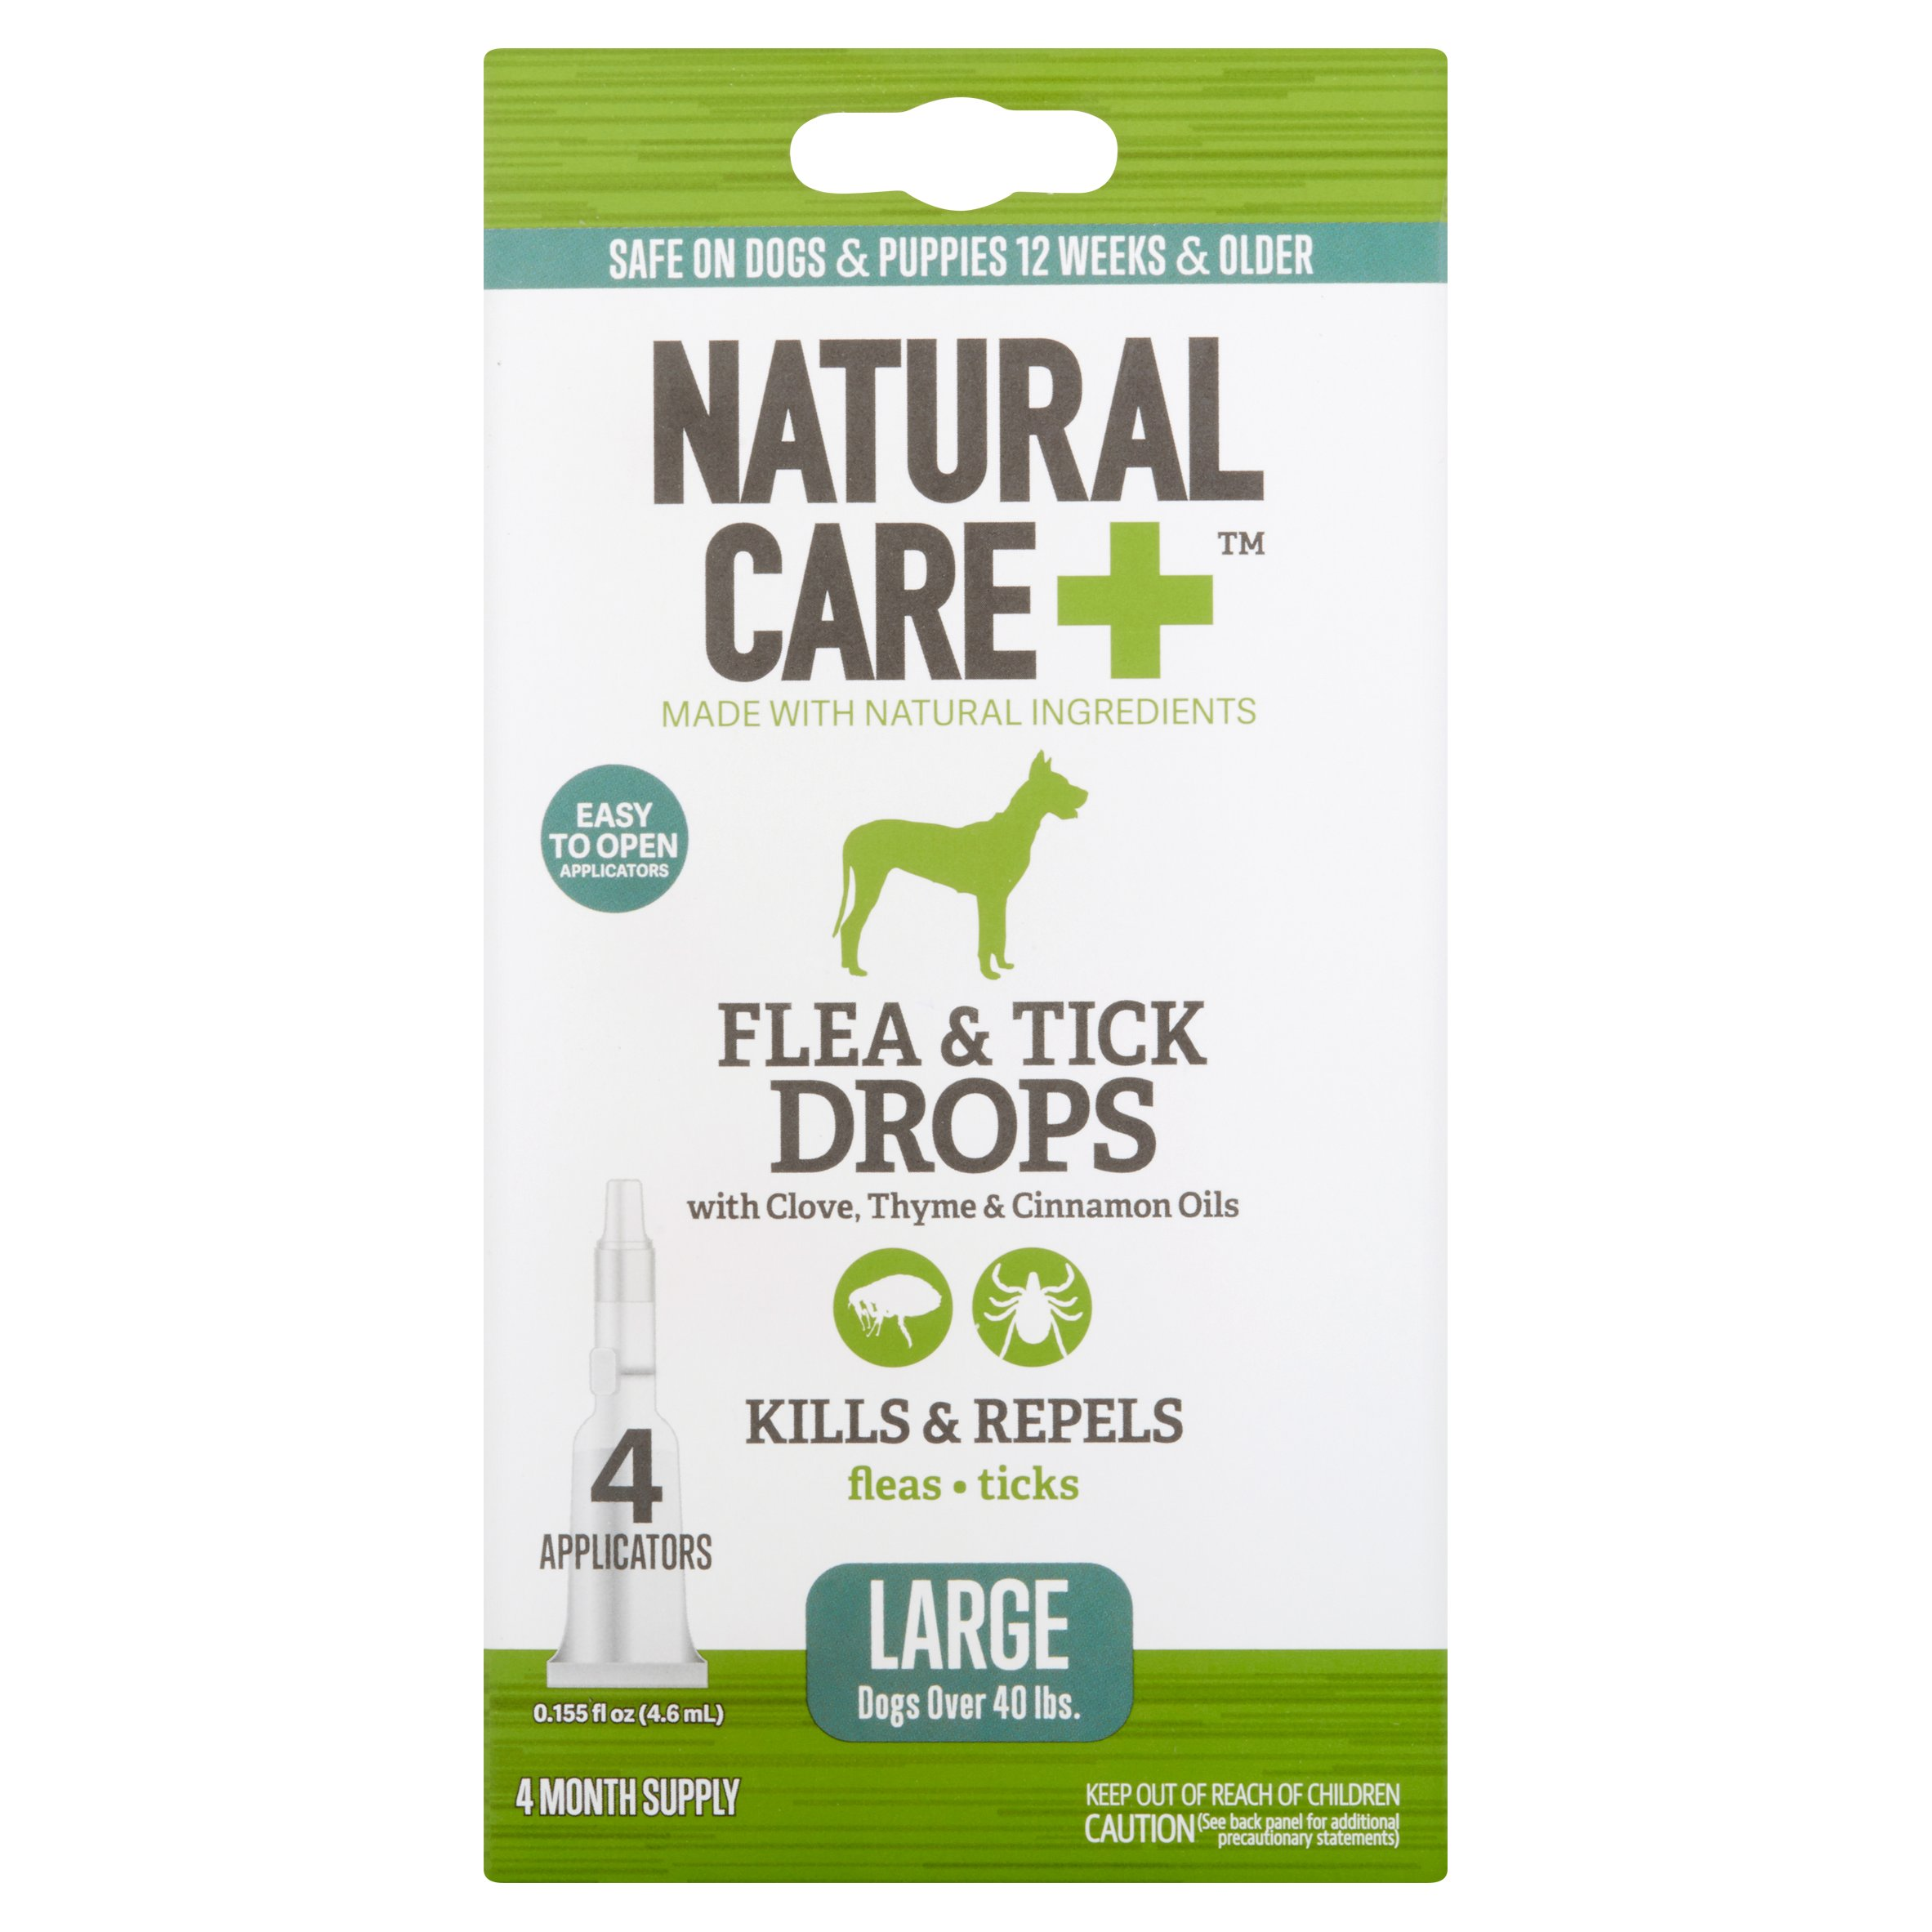 Natural Care+ Flea & Tick Drops Large Dogs Over 40 lbs., 0.155 fl oz